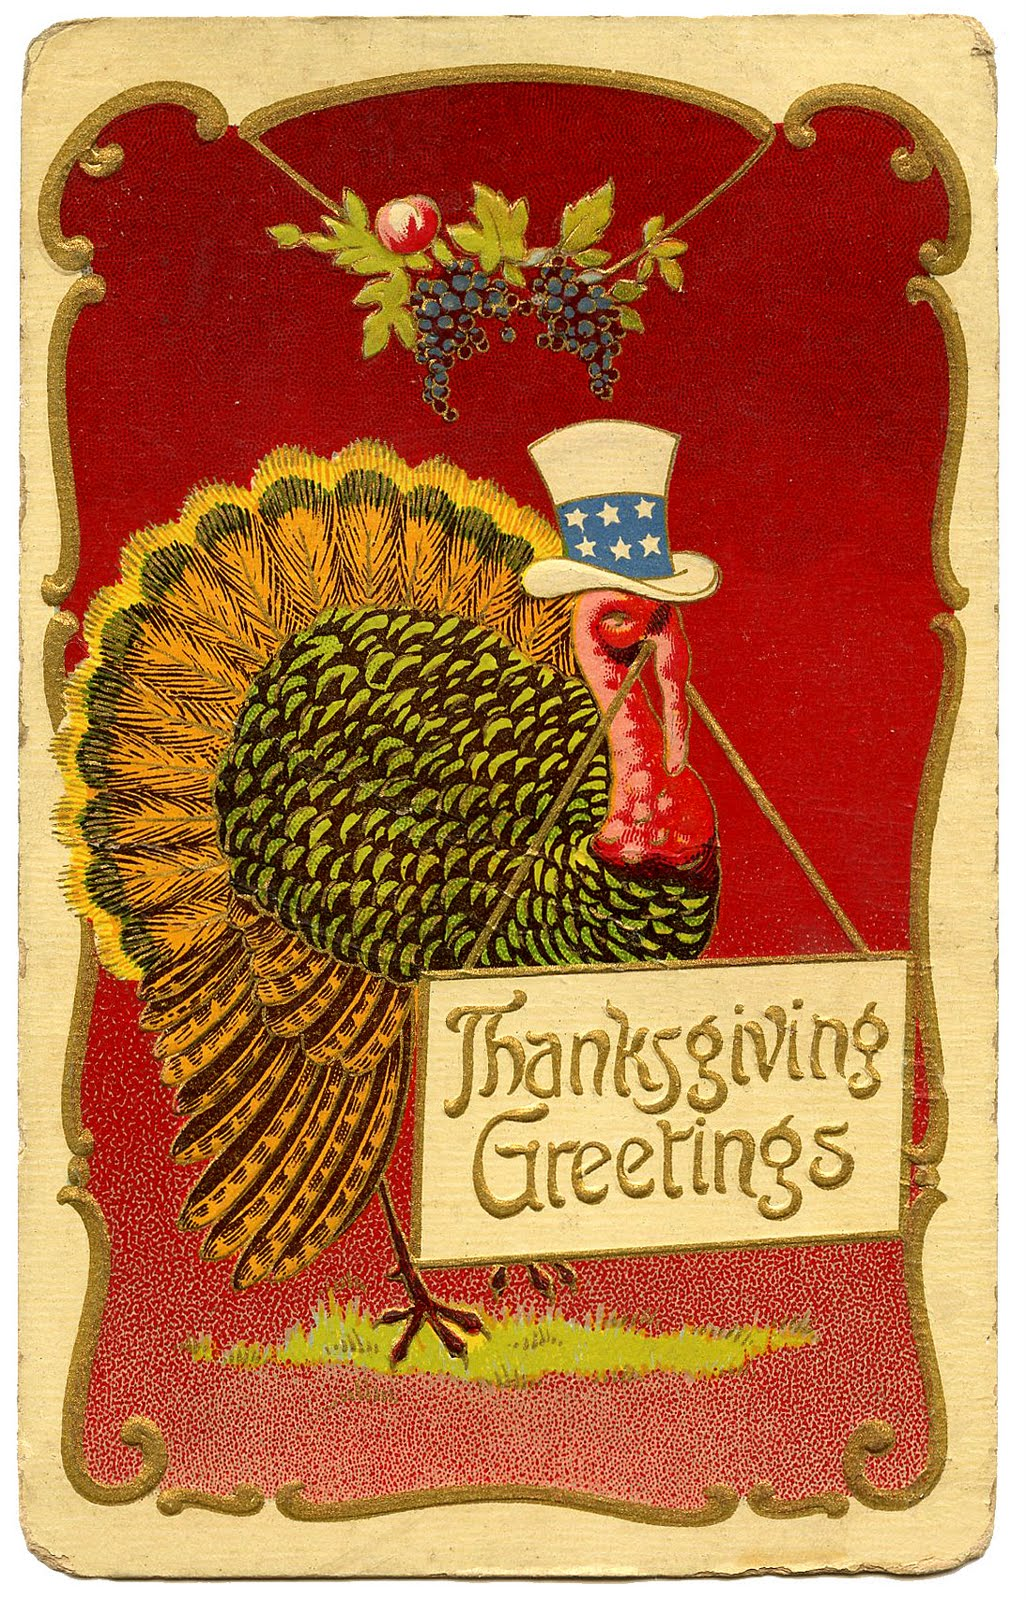 Vintage Thanksgiving Clip Art   Patriotic Turkey   The Graphics Fairy